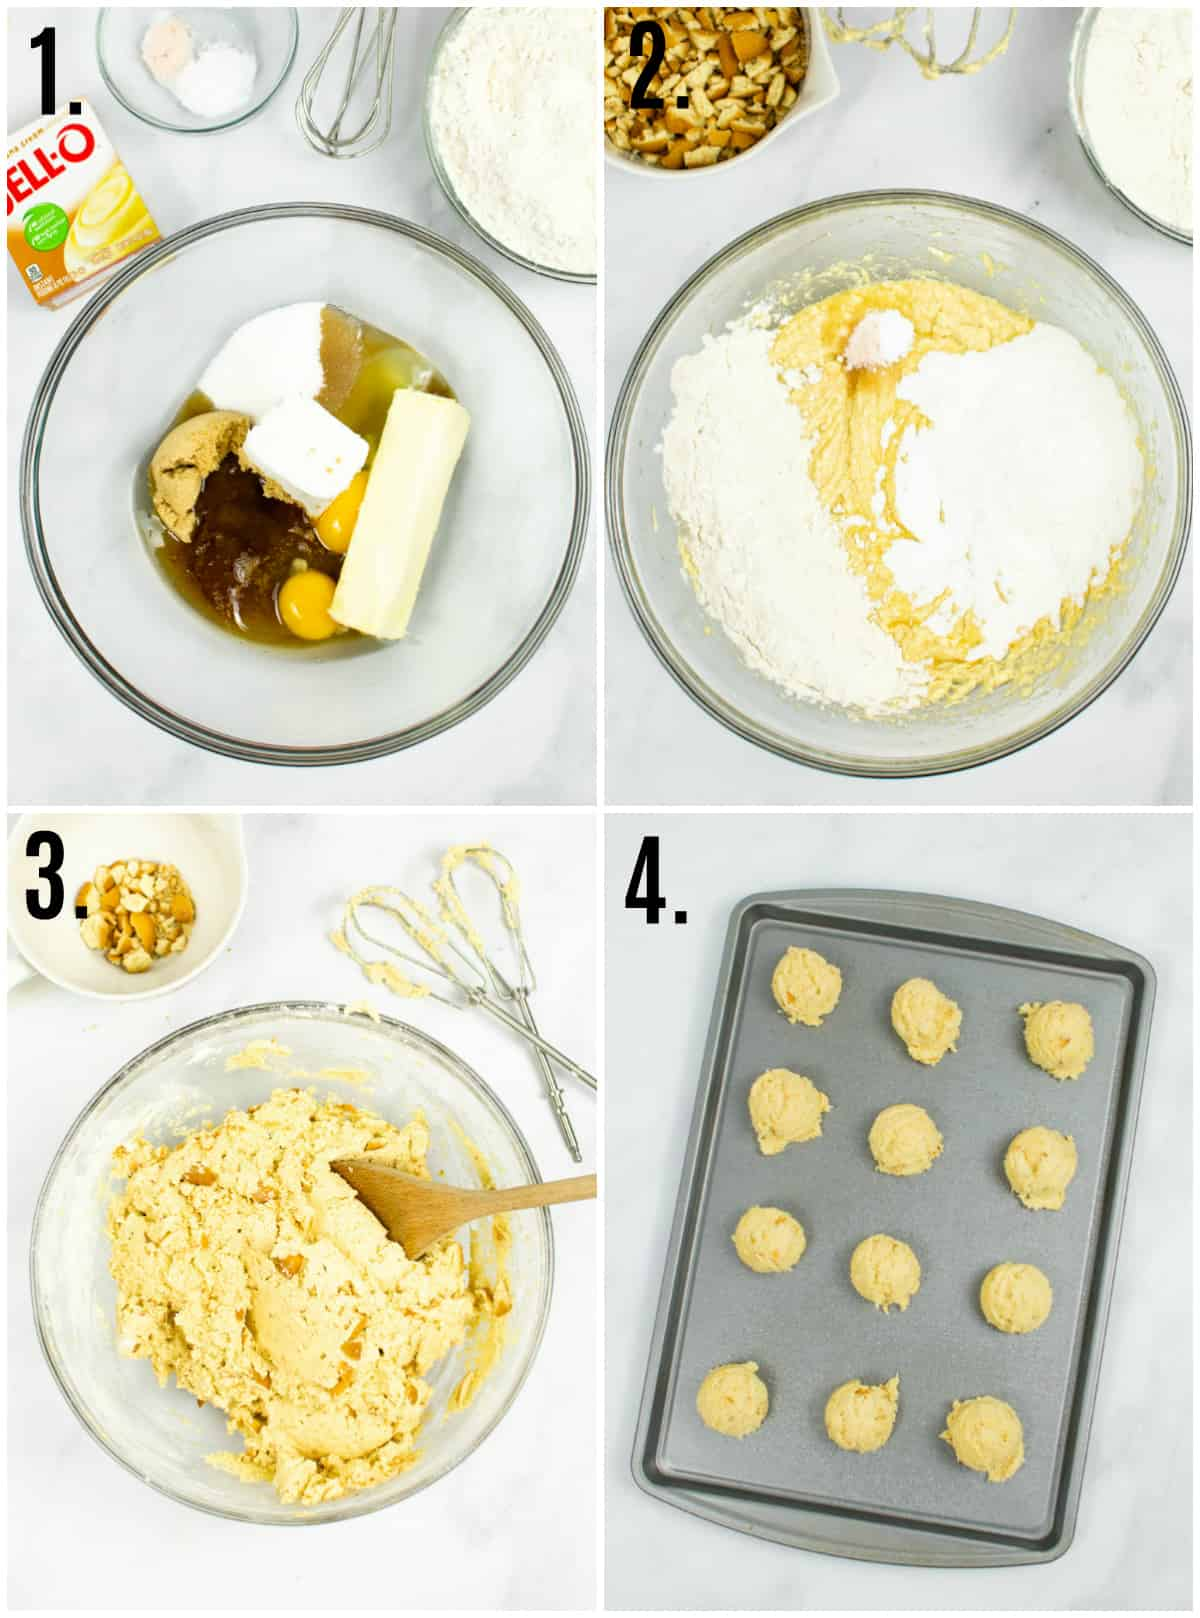 Step by step photos on how to make Banana Pudding Cookies